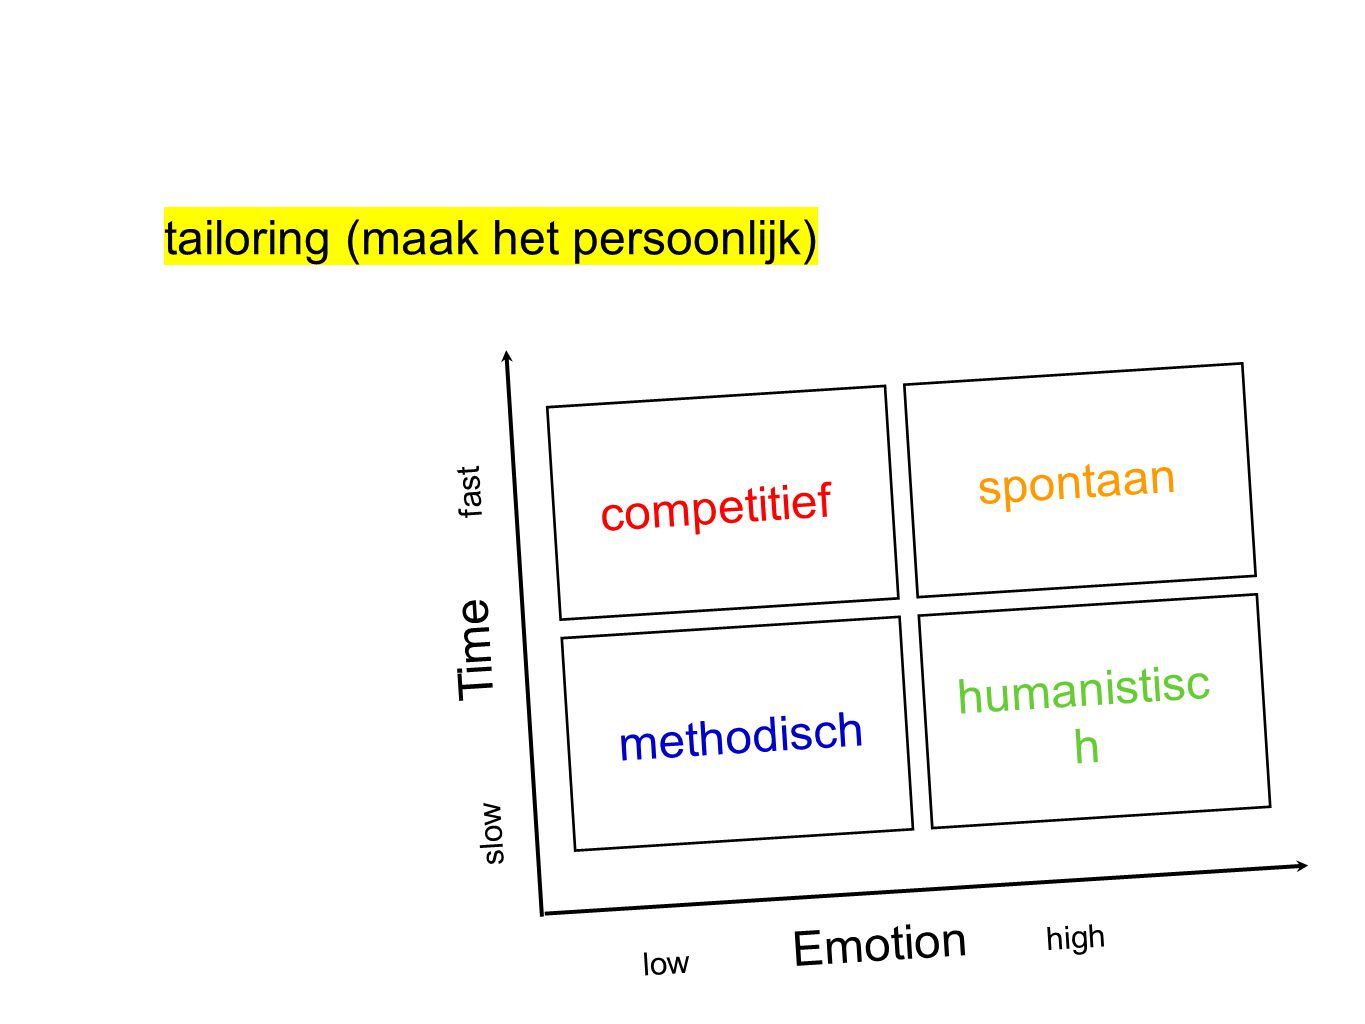 tailoring (maak het persoonlijk) low Emotion high slow Time fast spontaan methodisch humanistisc h competitief